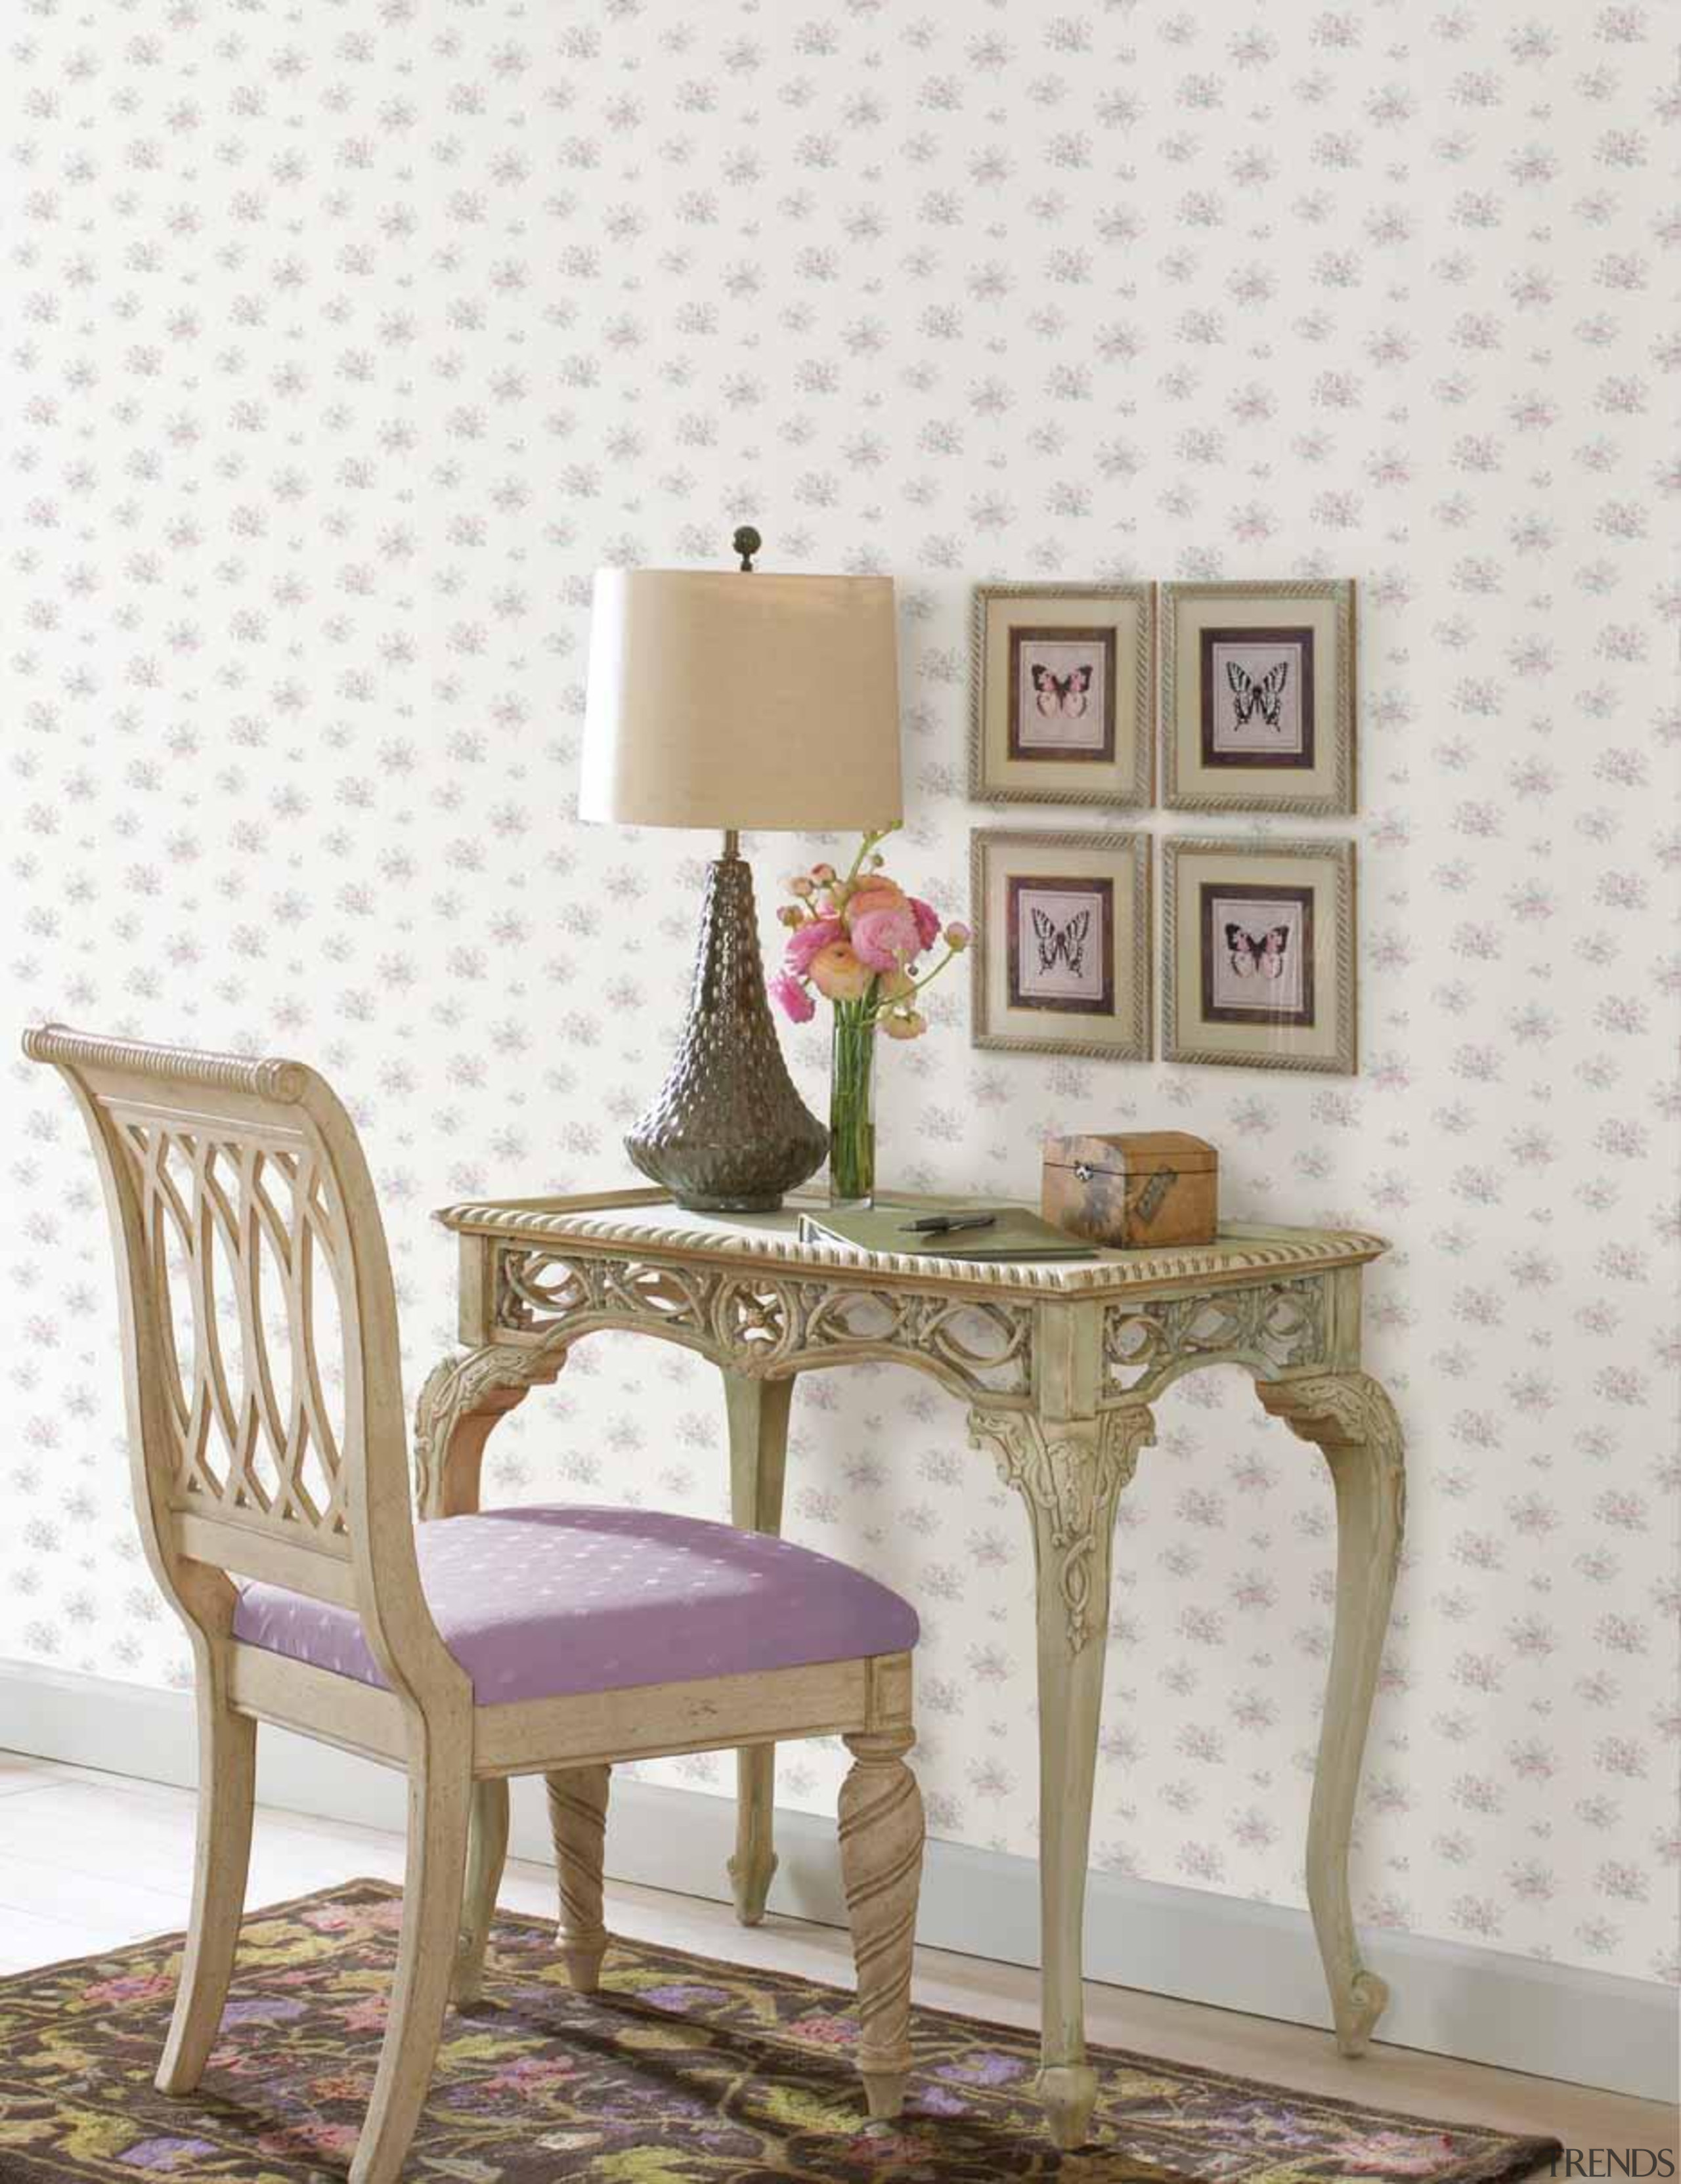 Saphyr II Range - chair | furniture | chair, furniture, interior design, pink, product design, table, wall, white